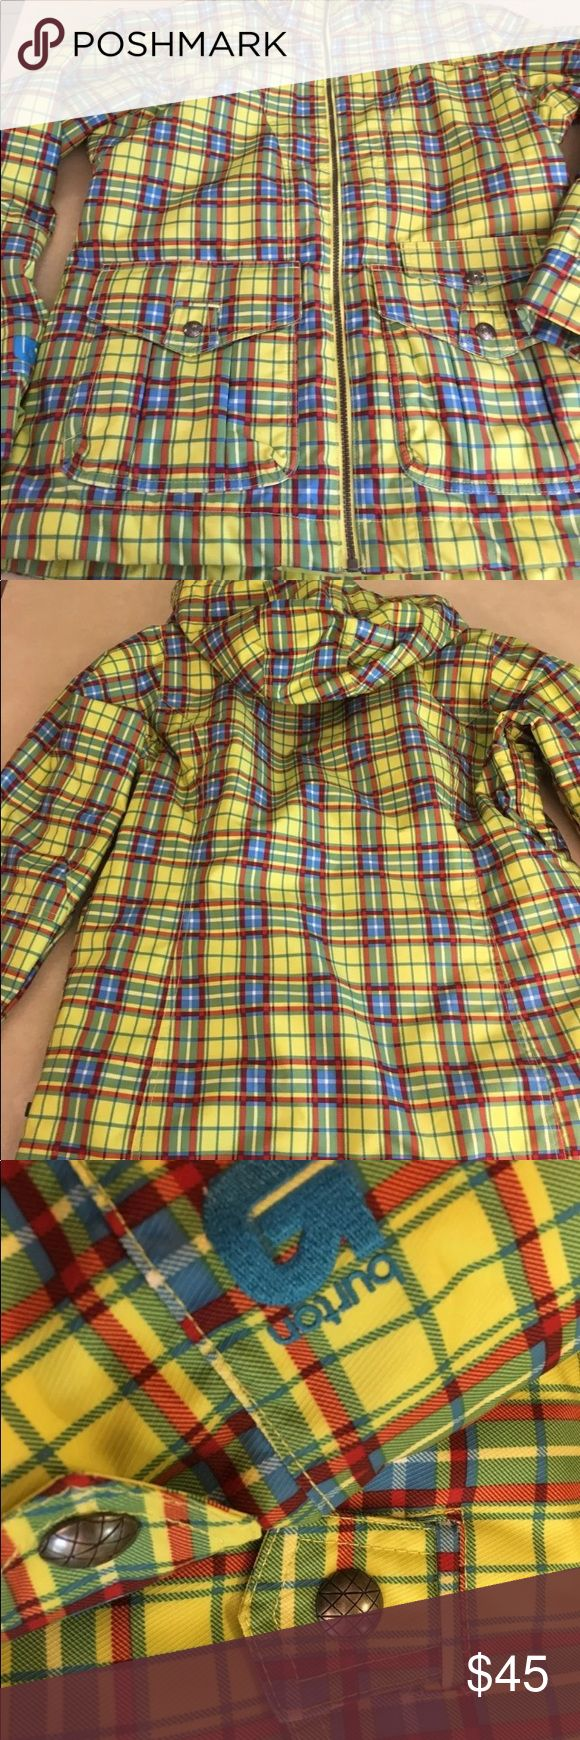 "Burton Snowboard Dry Ride Jacket Yellow Plaid L Plaid Snowboard Jacket. Tons of Pockets Hooks. Zipped Mesh Armpit Lining 100% Polyester with 100% Polyurethane Membrane, Tricot Lining Size Large Measures approximately 22.5"" pit to pit 26"" Sleeve Length 28"" Length Burton Jackets & Coats Puffers"